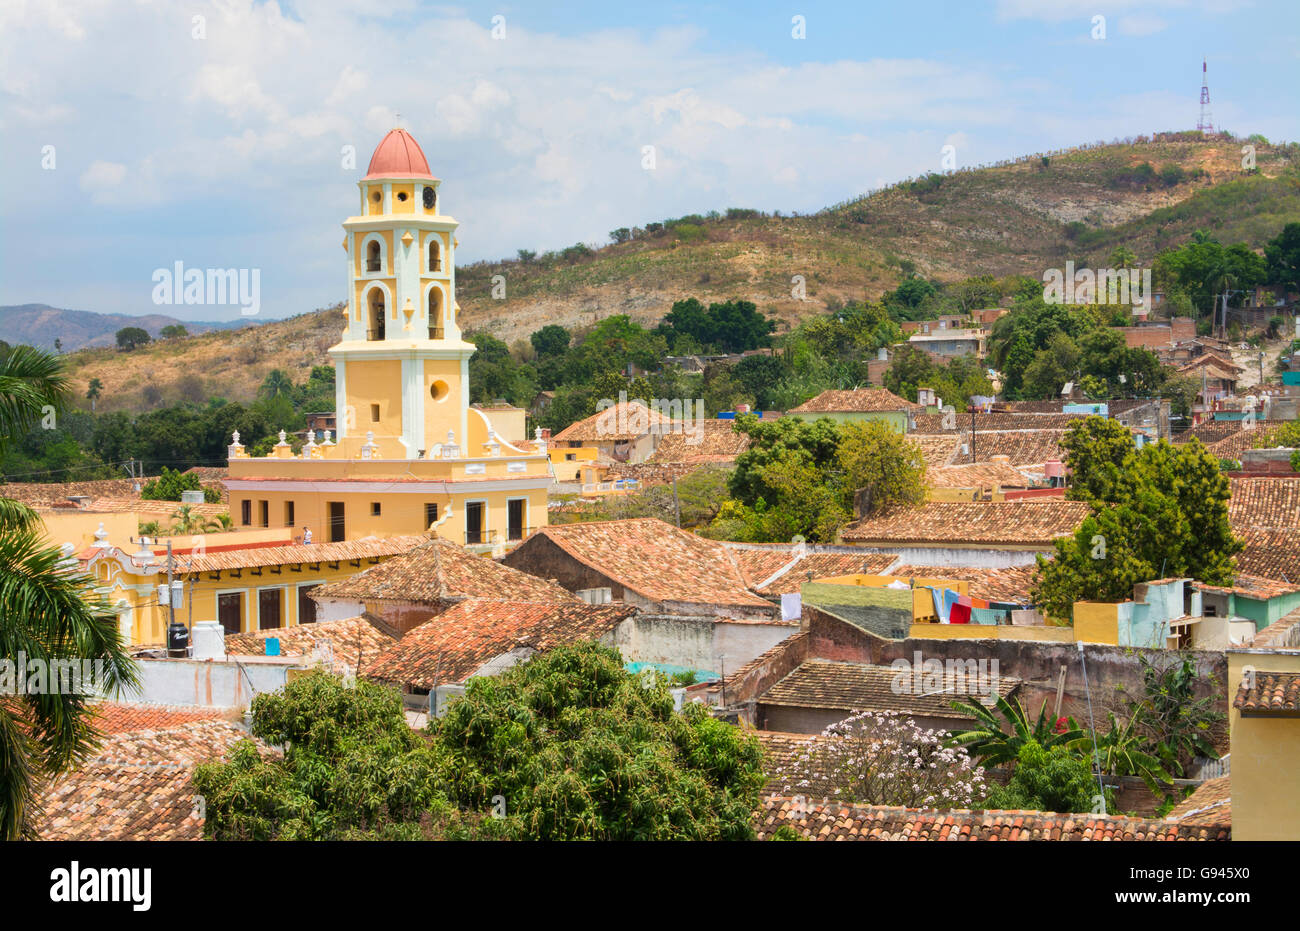 Trinidad Cuba from above tower with church and mountains with buildings of tile roofs of second oldest Colonial - Stock Image